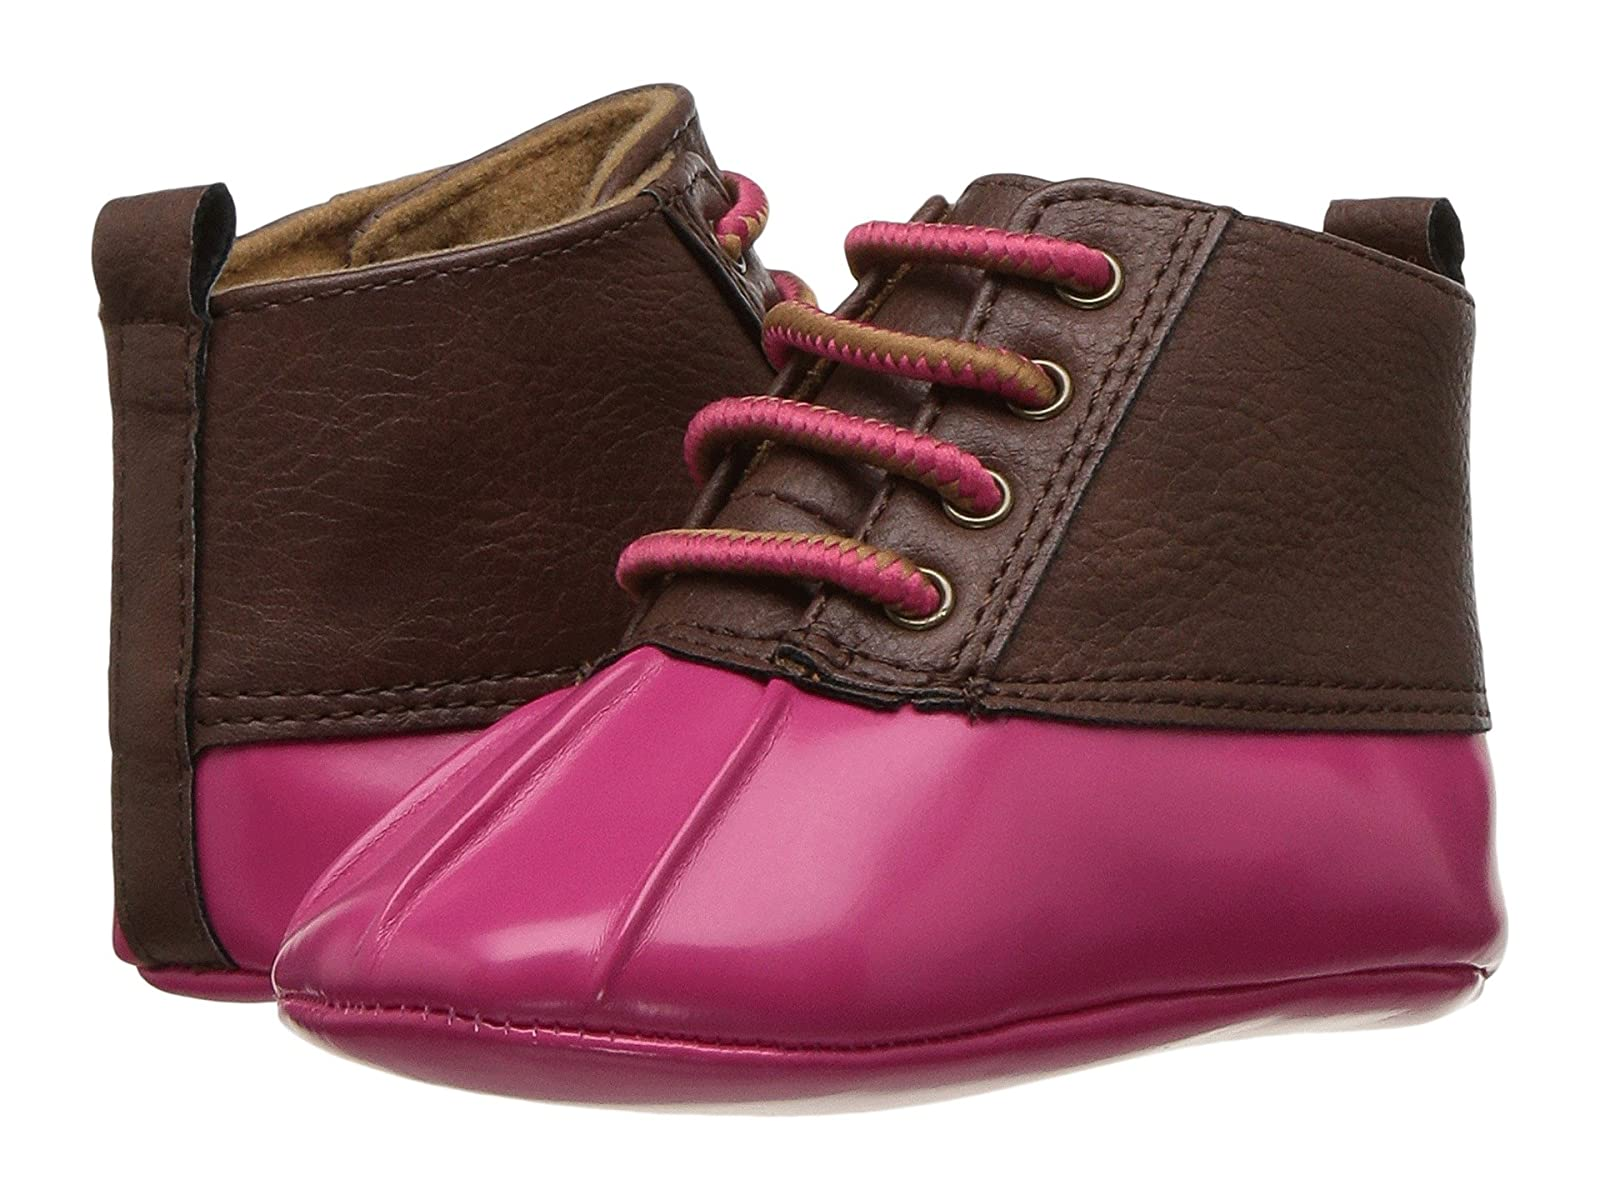 Baby Deer Soft Sole Duck Boot (Infant)Atmospheric grades have affordable shoes